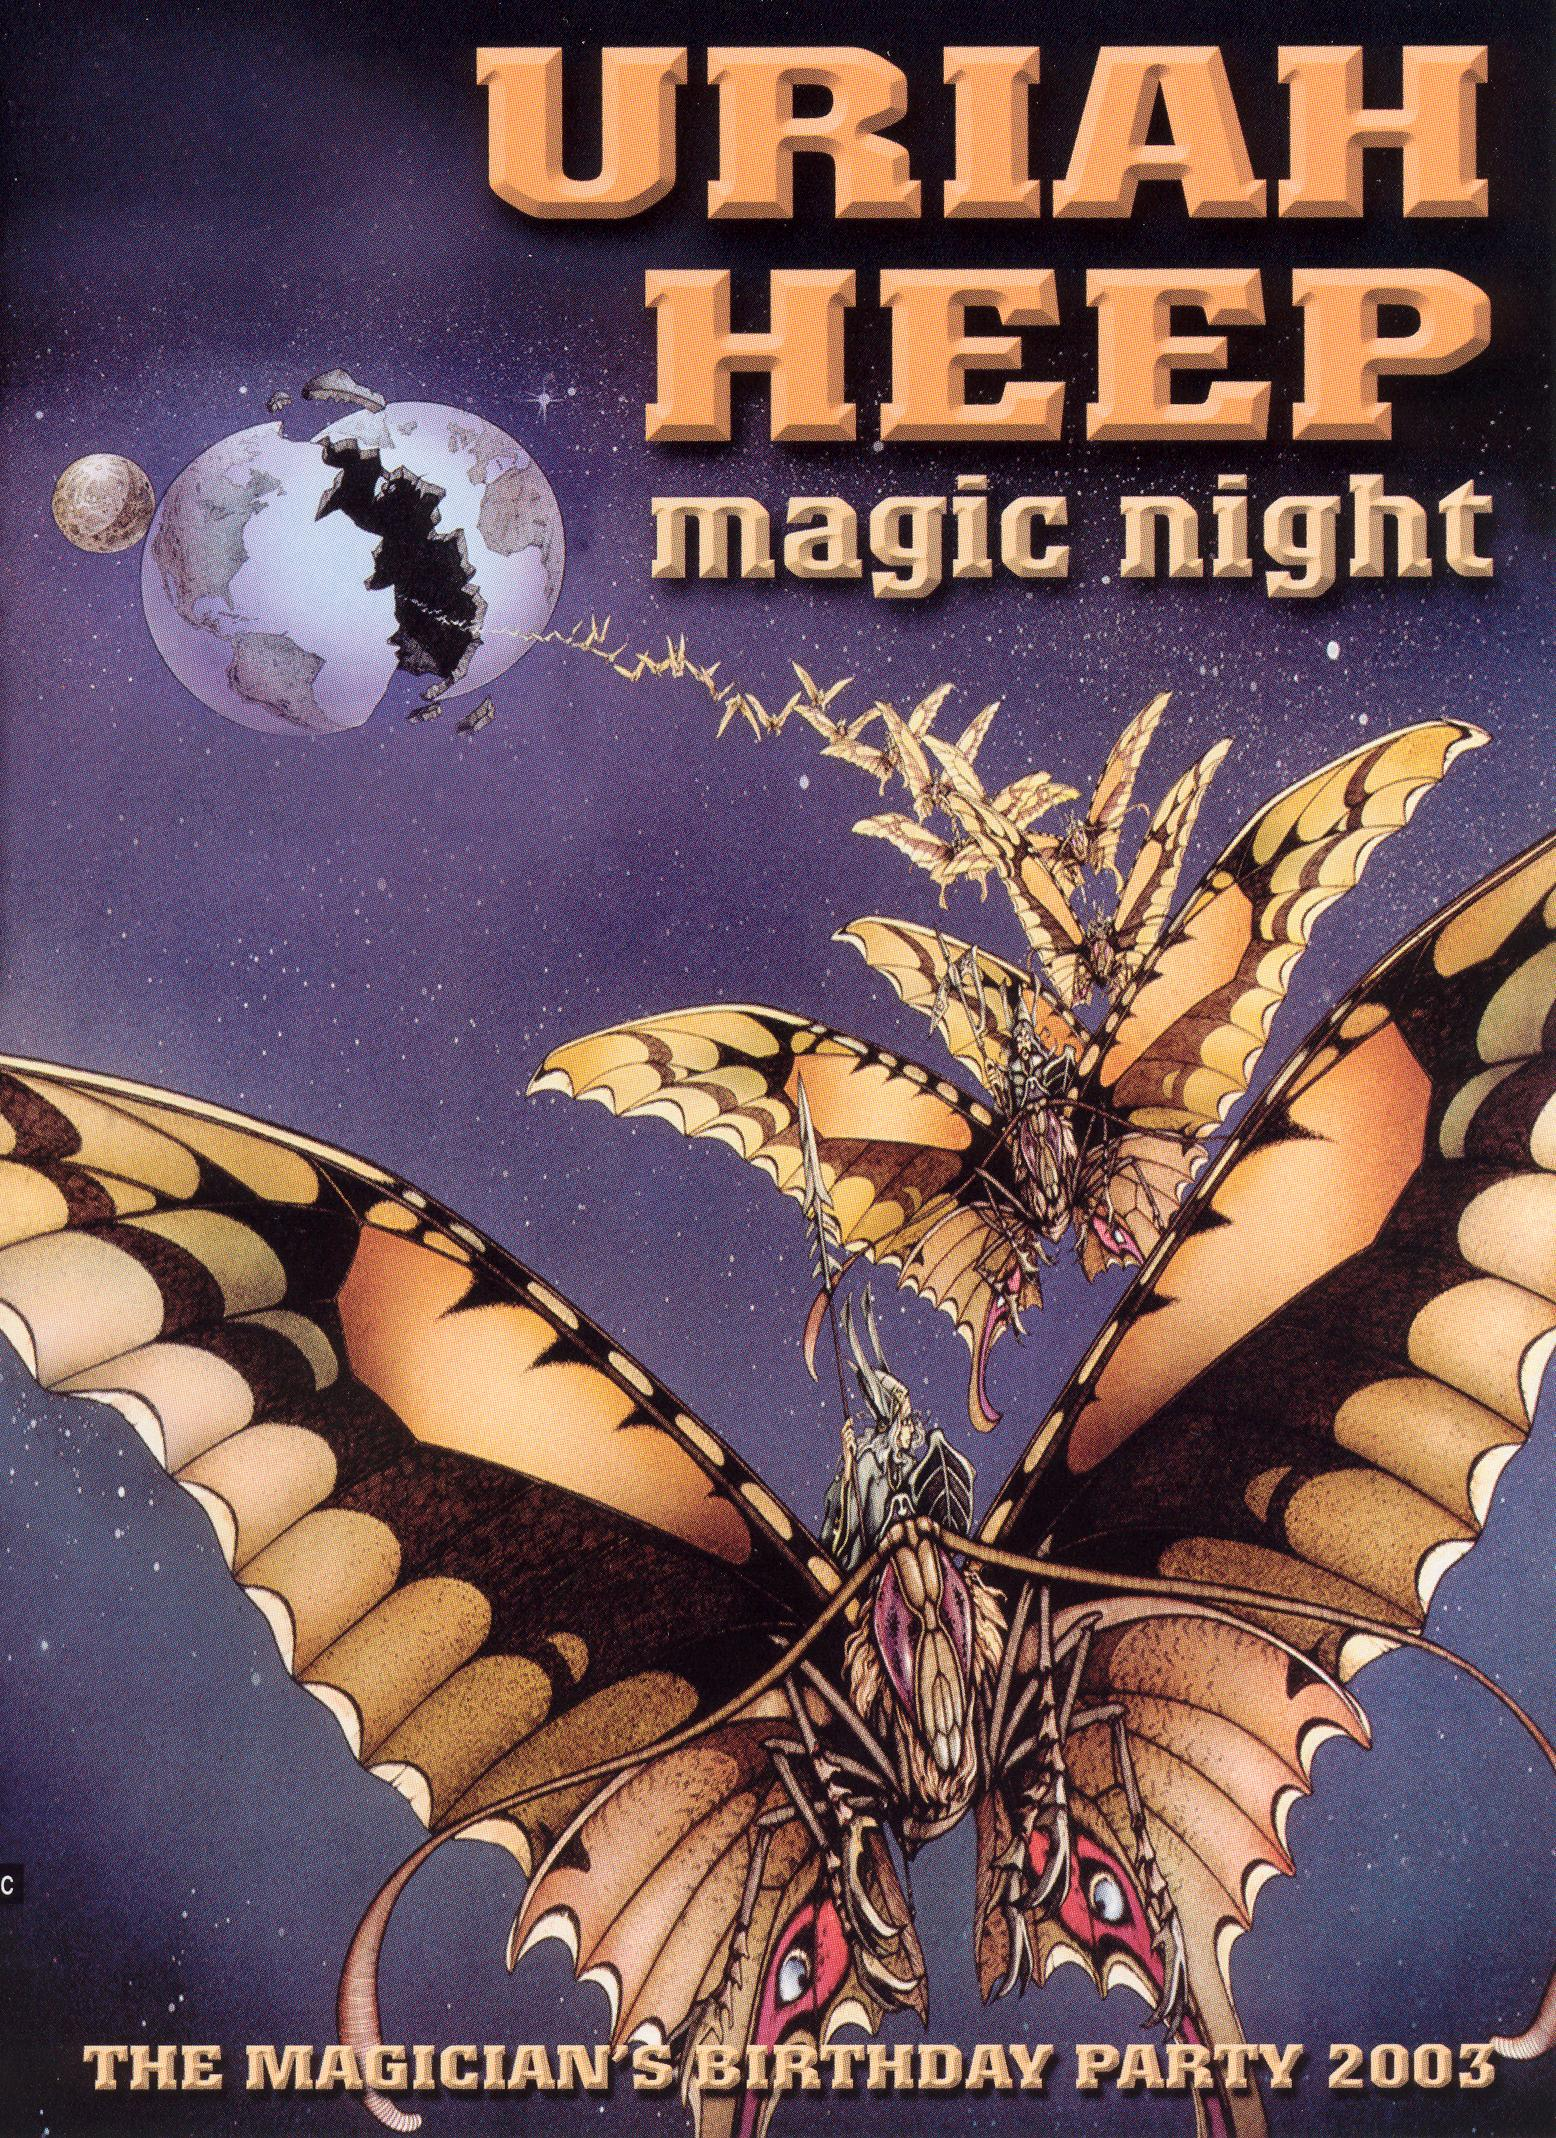 Uriah Heep: Magic Night - The Magician's Birthday Party 2003